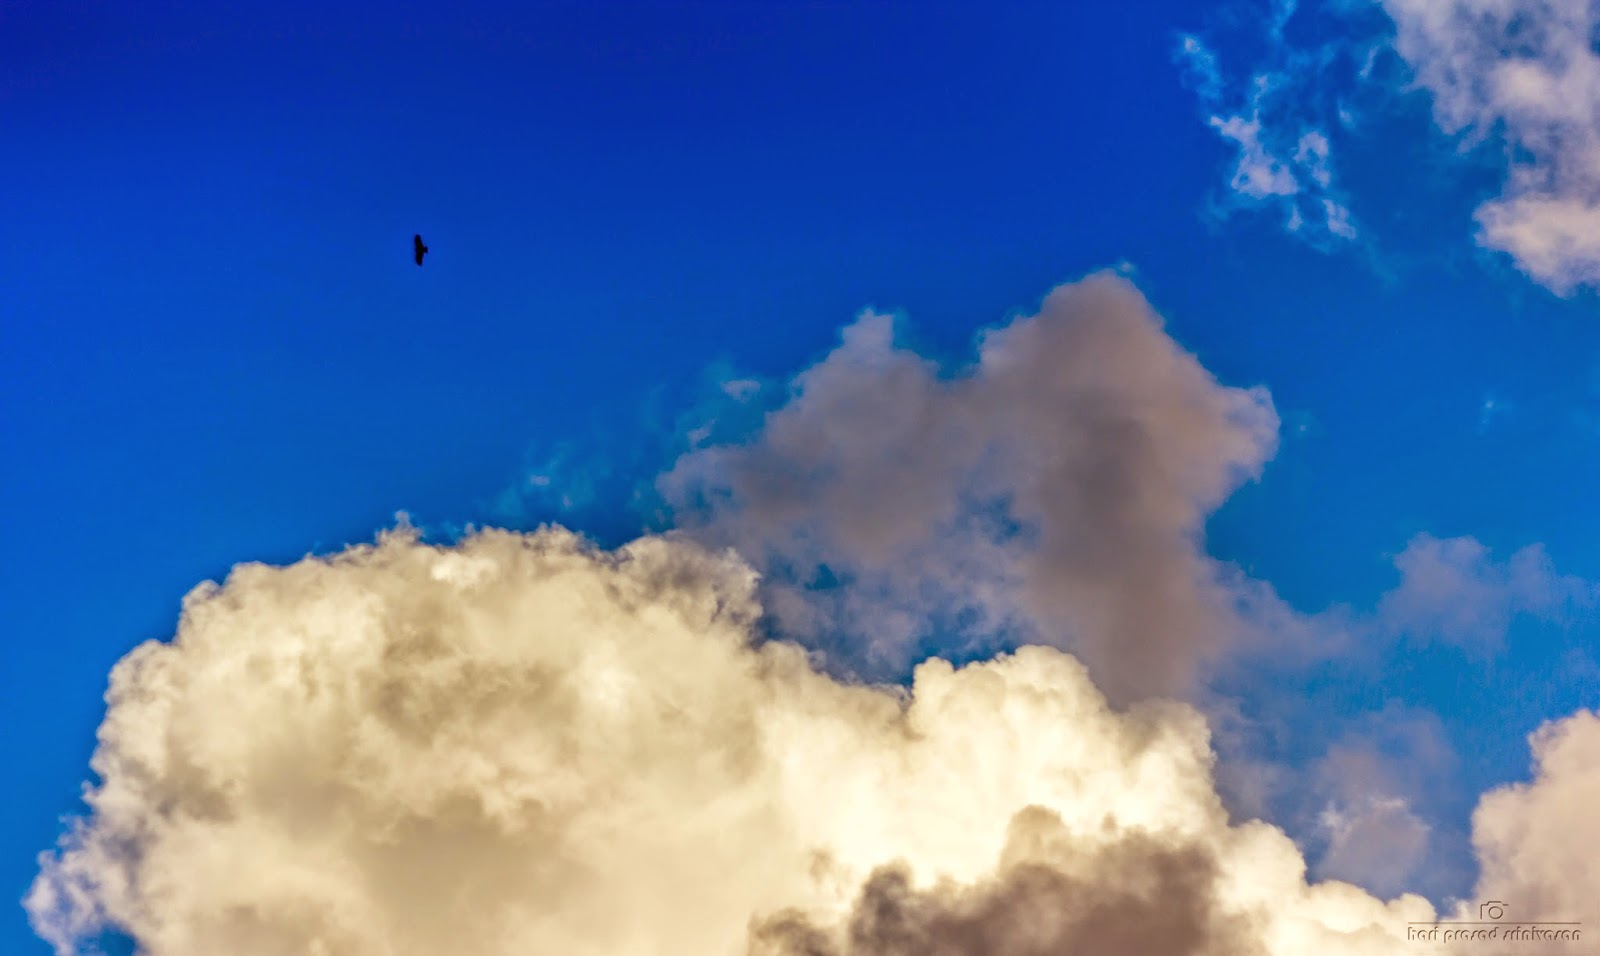 Cloud formaion with a flying eagle in the frame